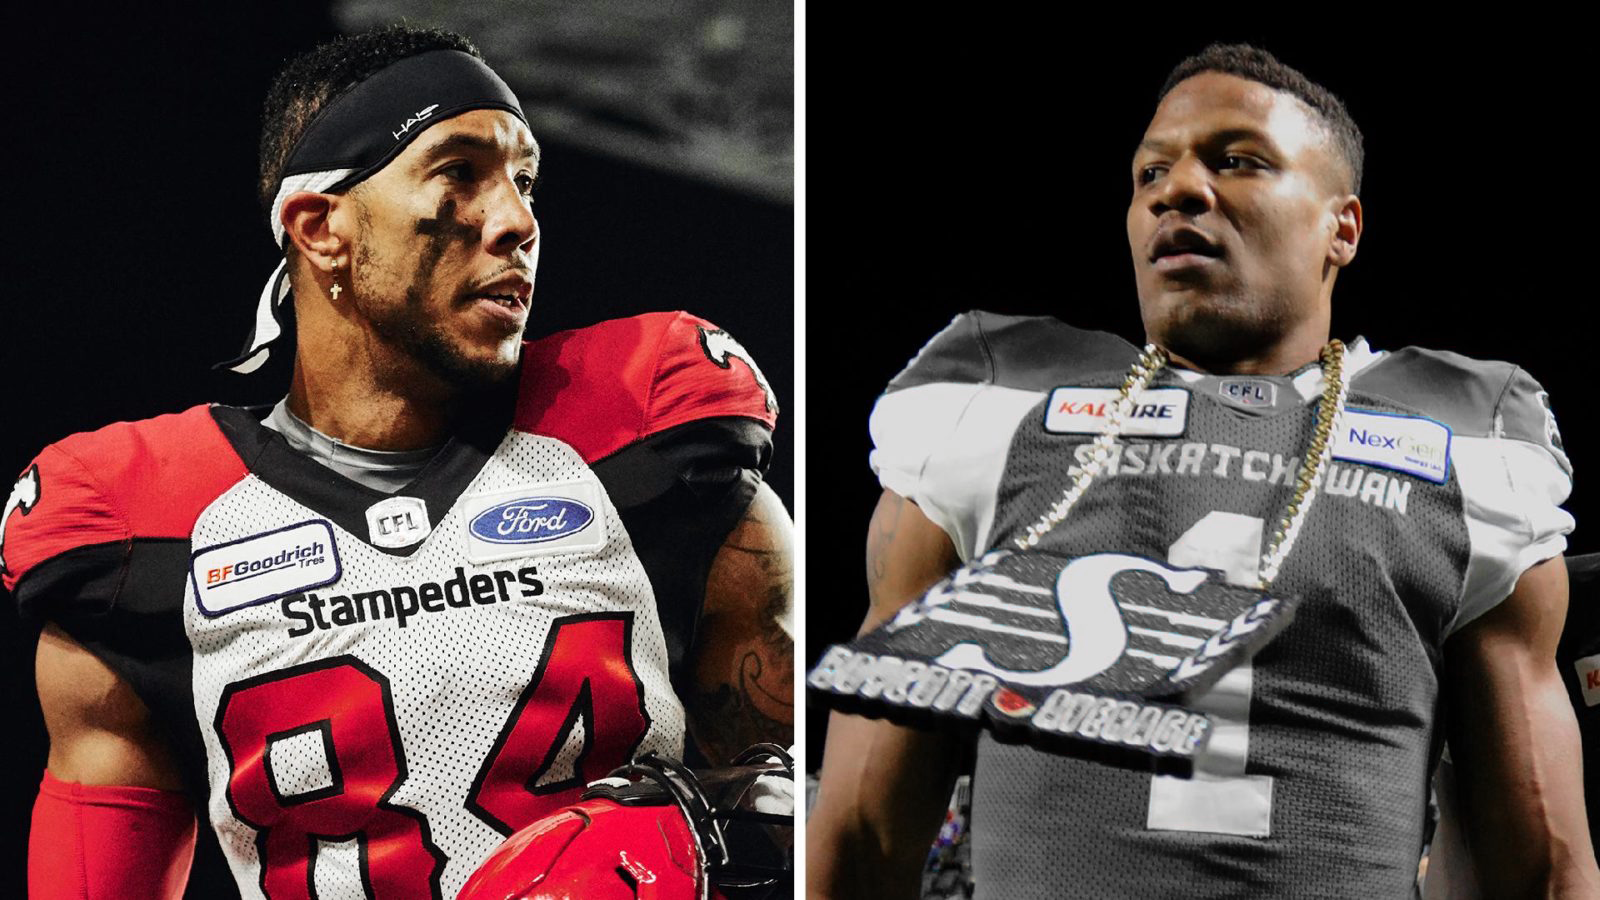 PREVIEW: SSK @ CGY - Calgary Stampeders